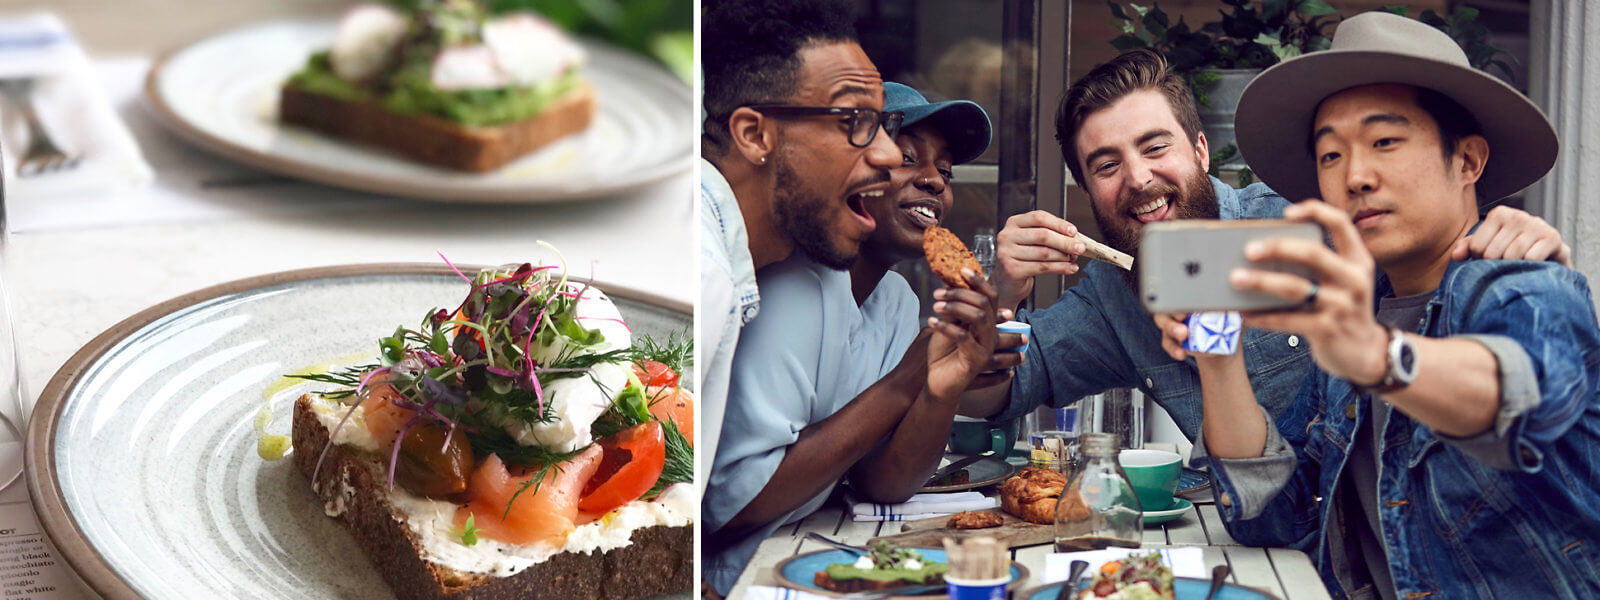 Two images. Left image: Salmon brioche with herb crème fraiche on a plate with avo smash on a plate in the background. Right image: Four guys sitting at a table outside, enjoying food while posing for selfie.